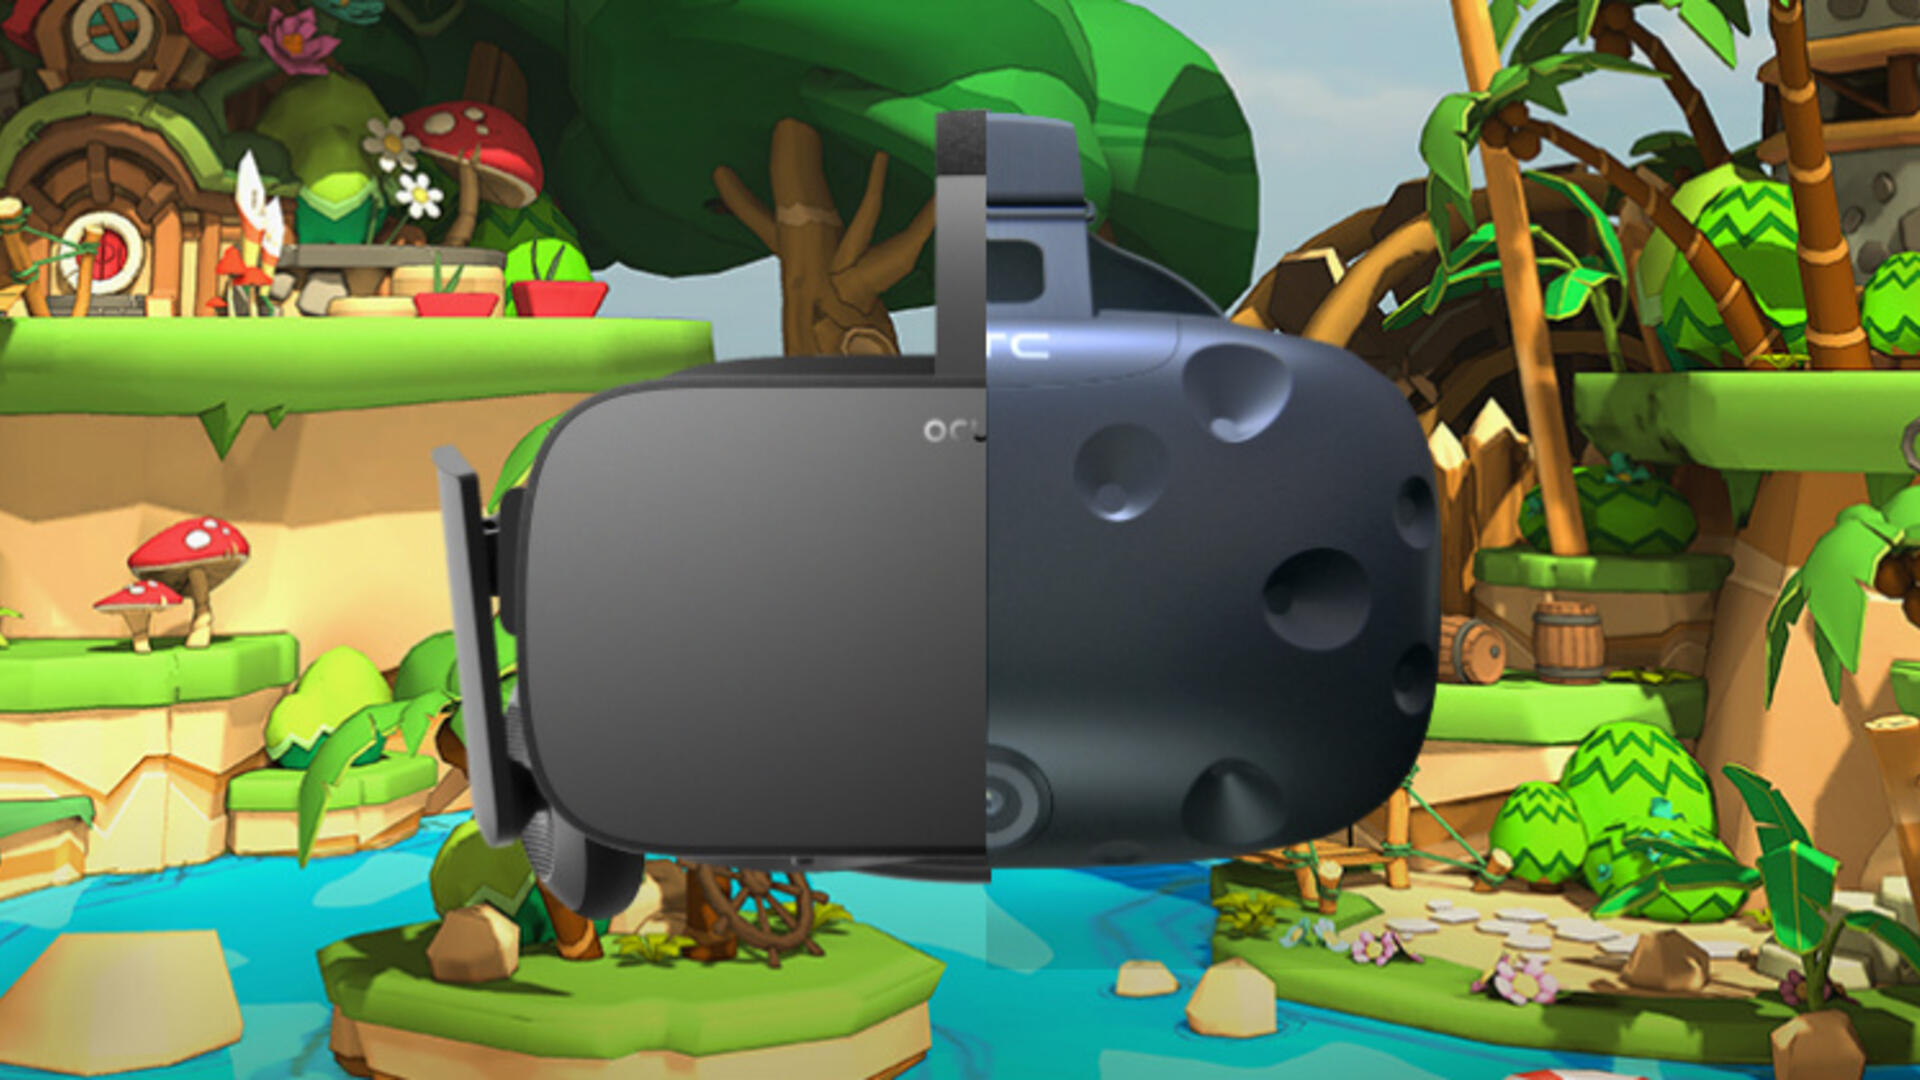 Oculus Rift Games Come to HTC Vive With Plug-In